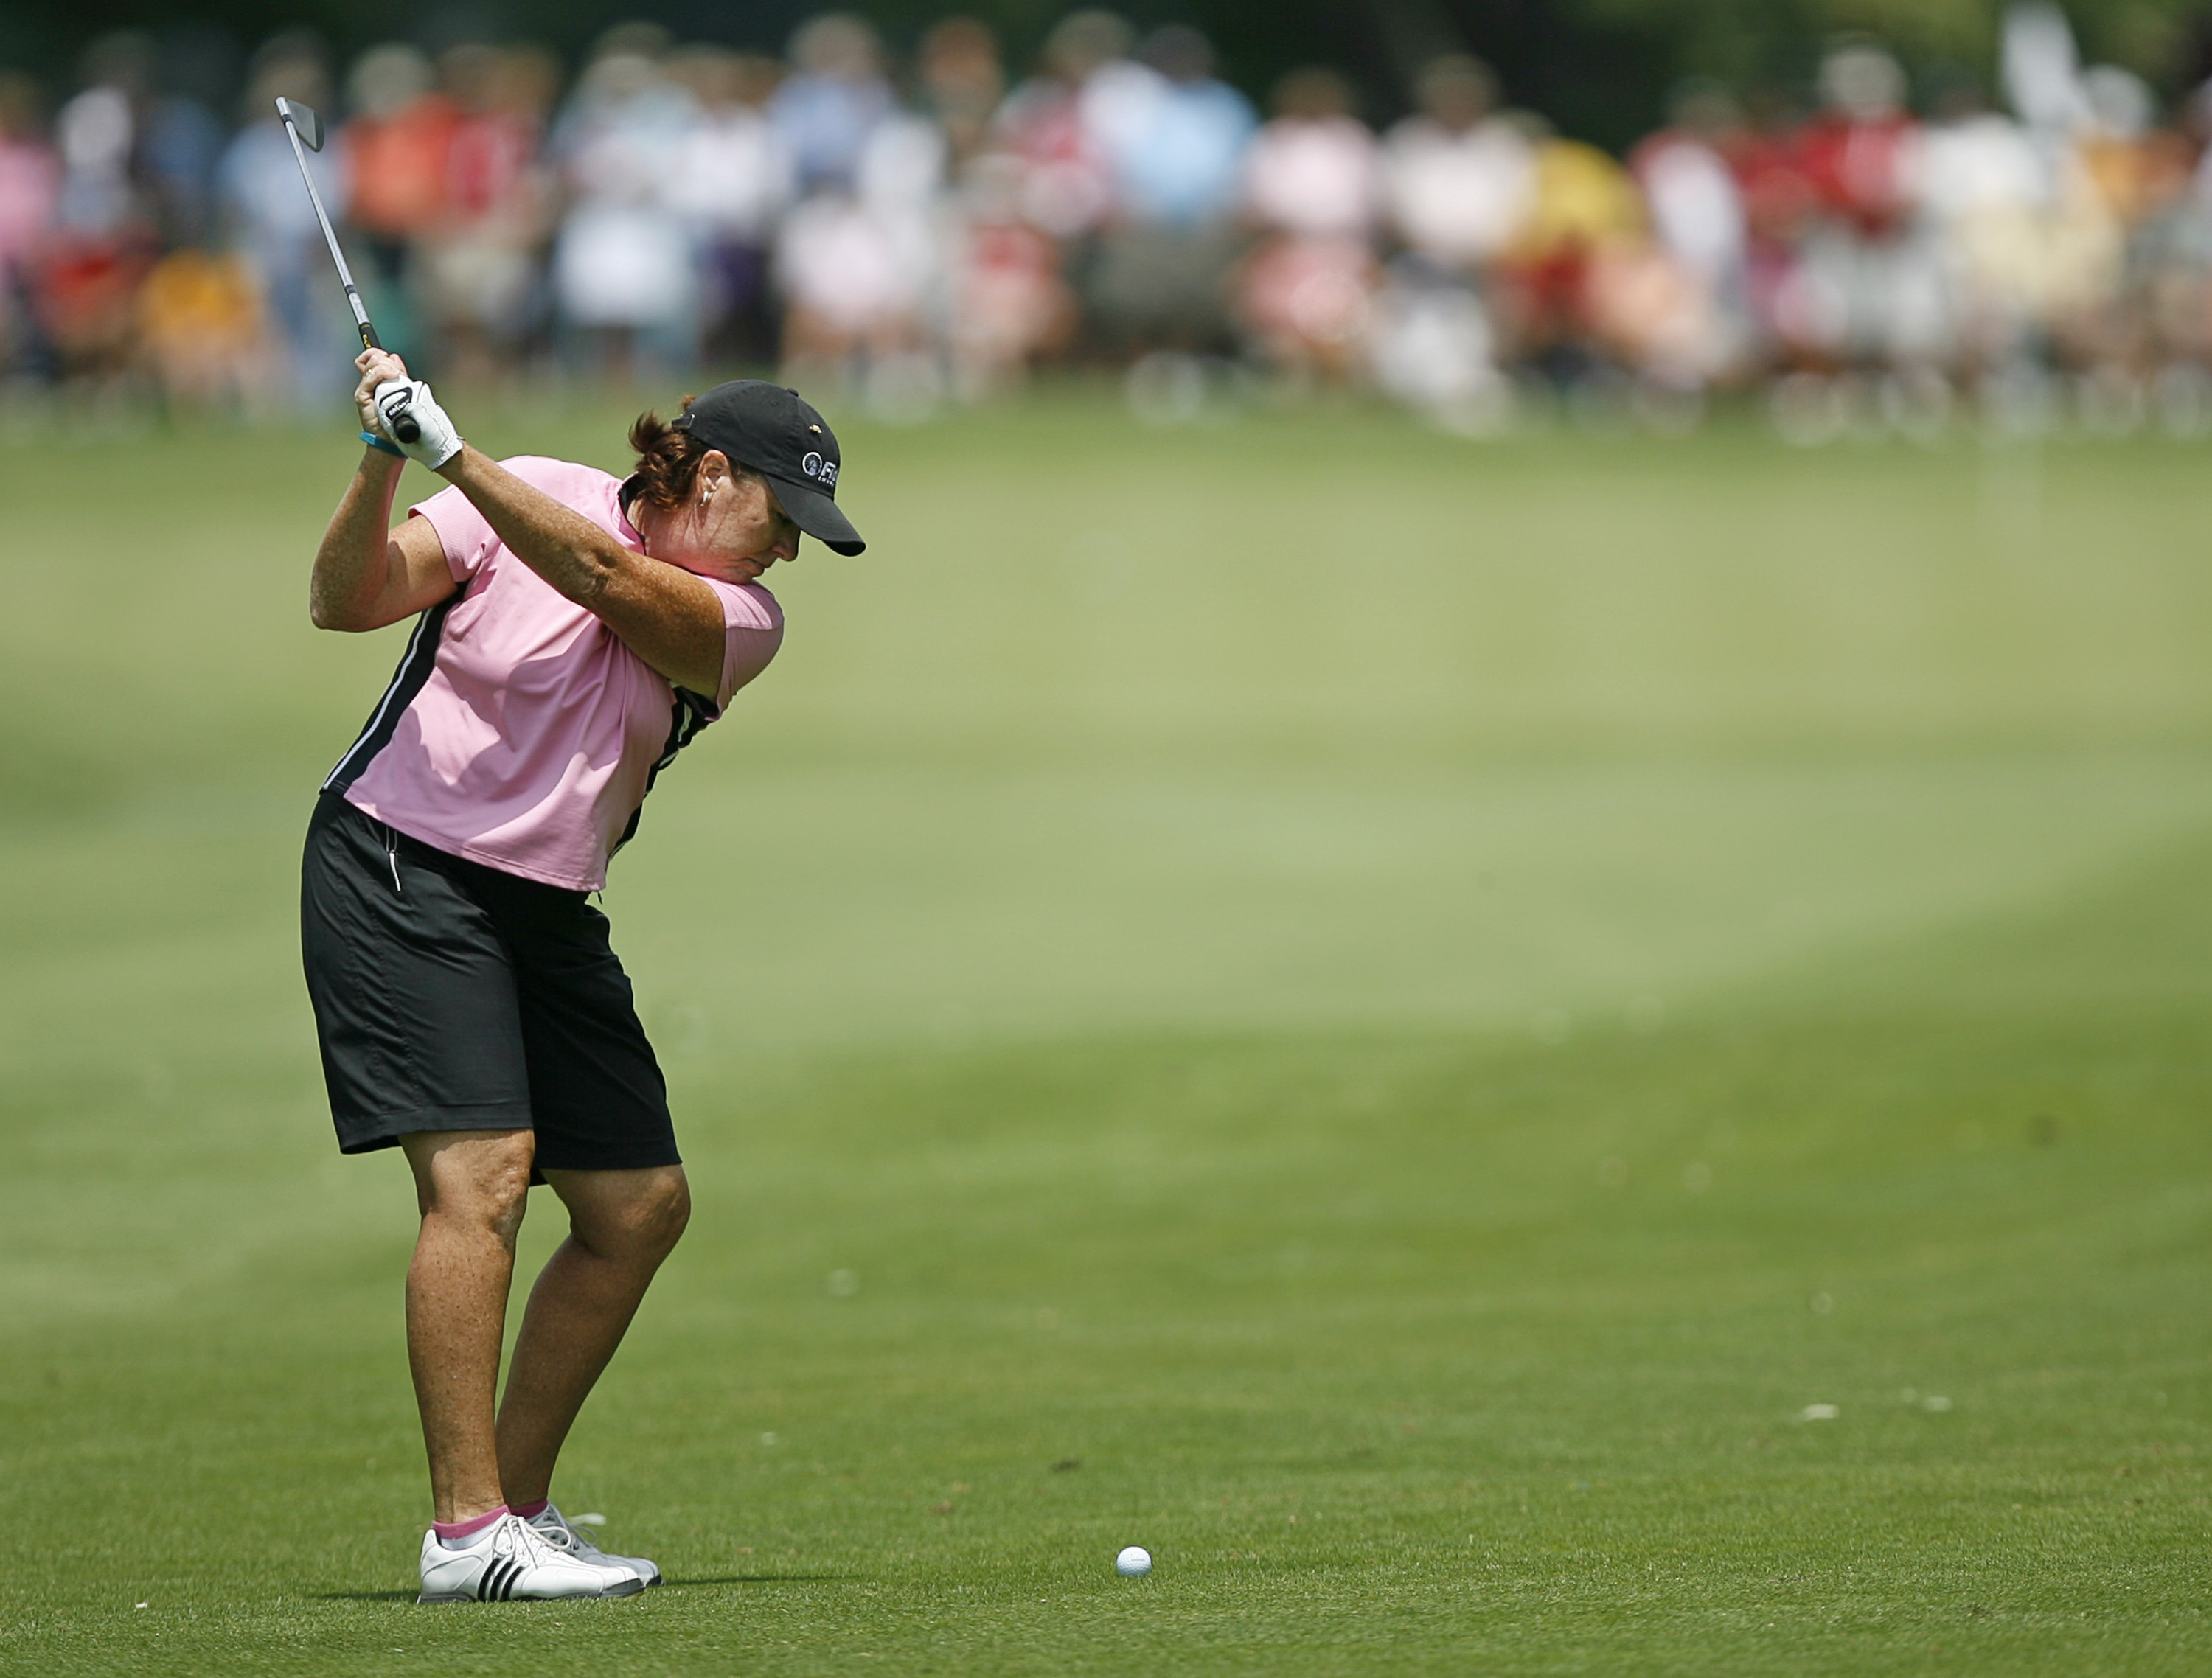 SYLVANIA, OH - JULY 14: Meg Mallon hits her second shot on the 4th hole during the third round of the Jamie Farr Owens Corning Classic on July 14, 2007 in Sylvania, Ohio. (Photo by Hunter Martin/Getty Images)